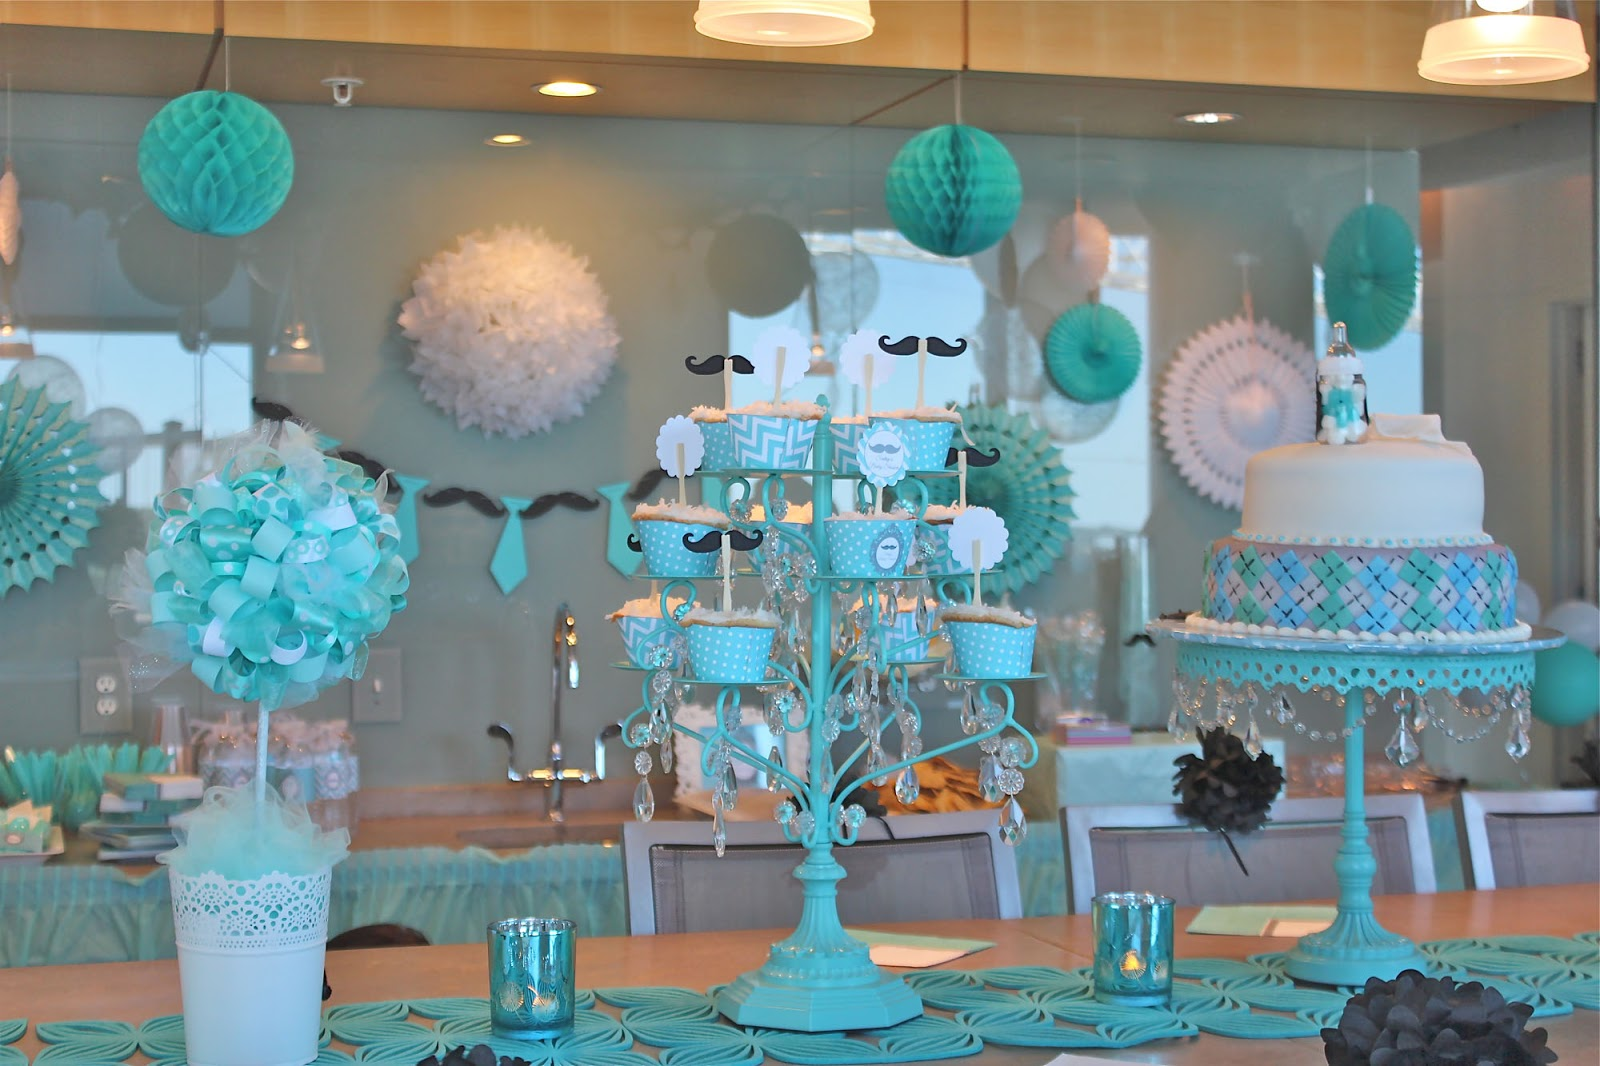 Centerpiece ideas for a baby shower